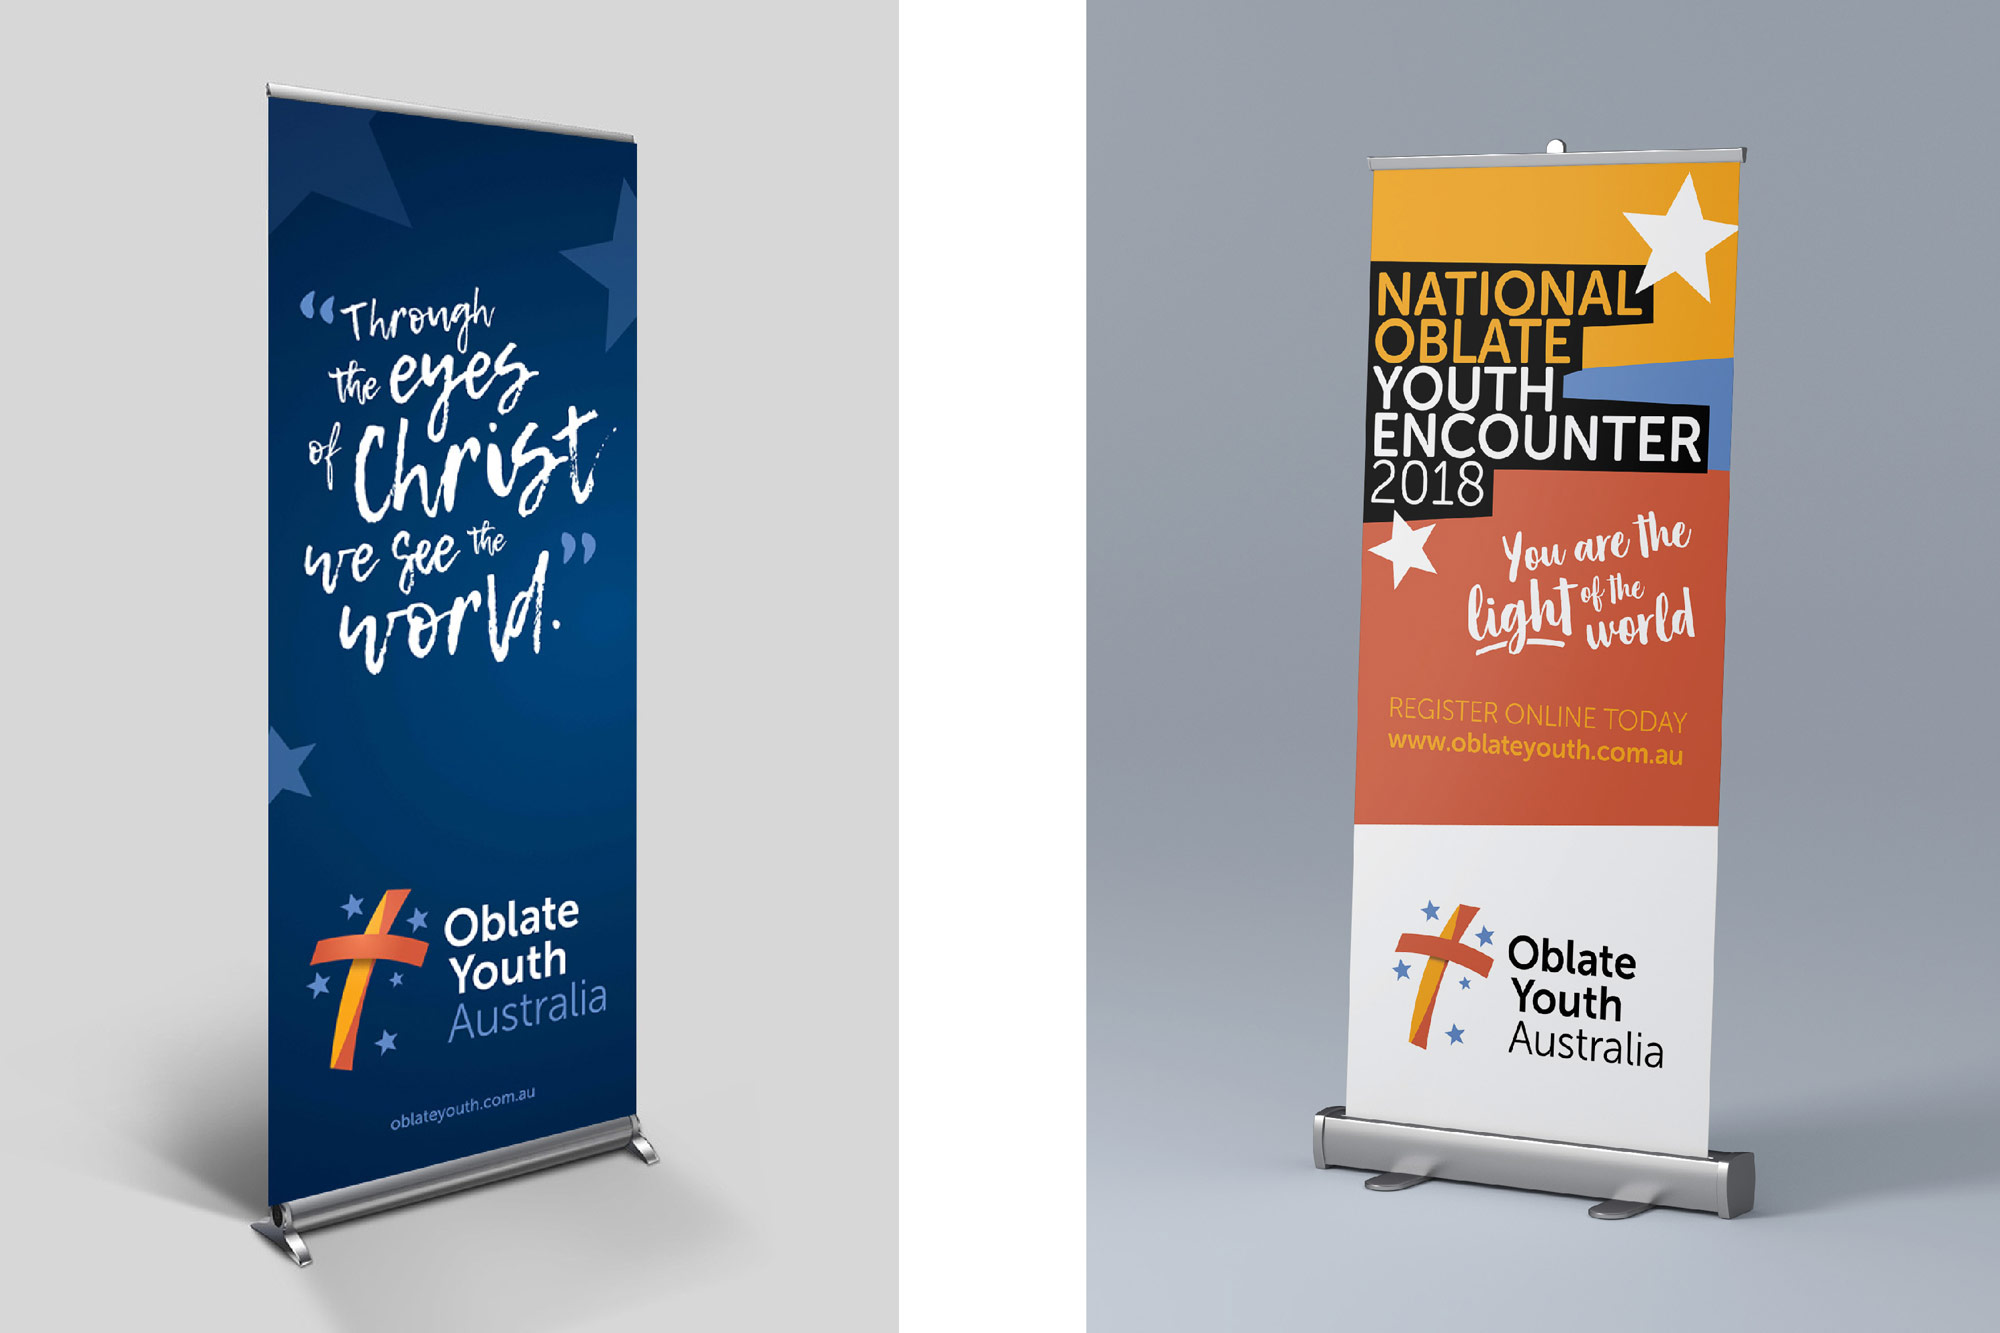 Image of Oblate Youth Australia branding and new logo